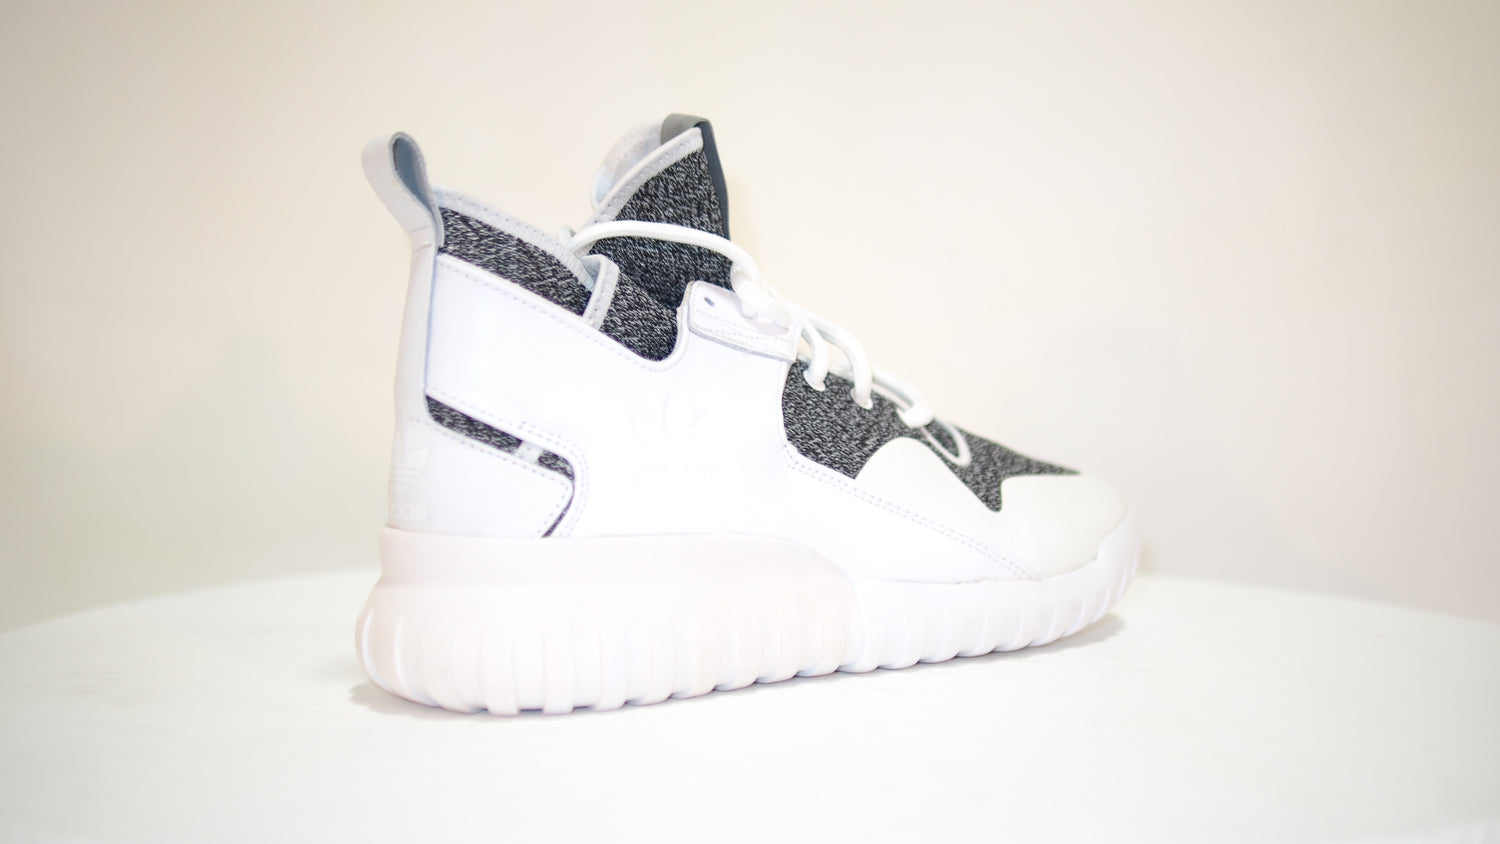 Tubular X - Dream Town Shoes